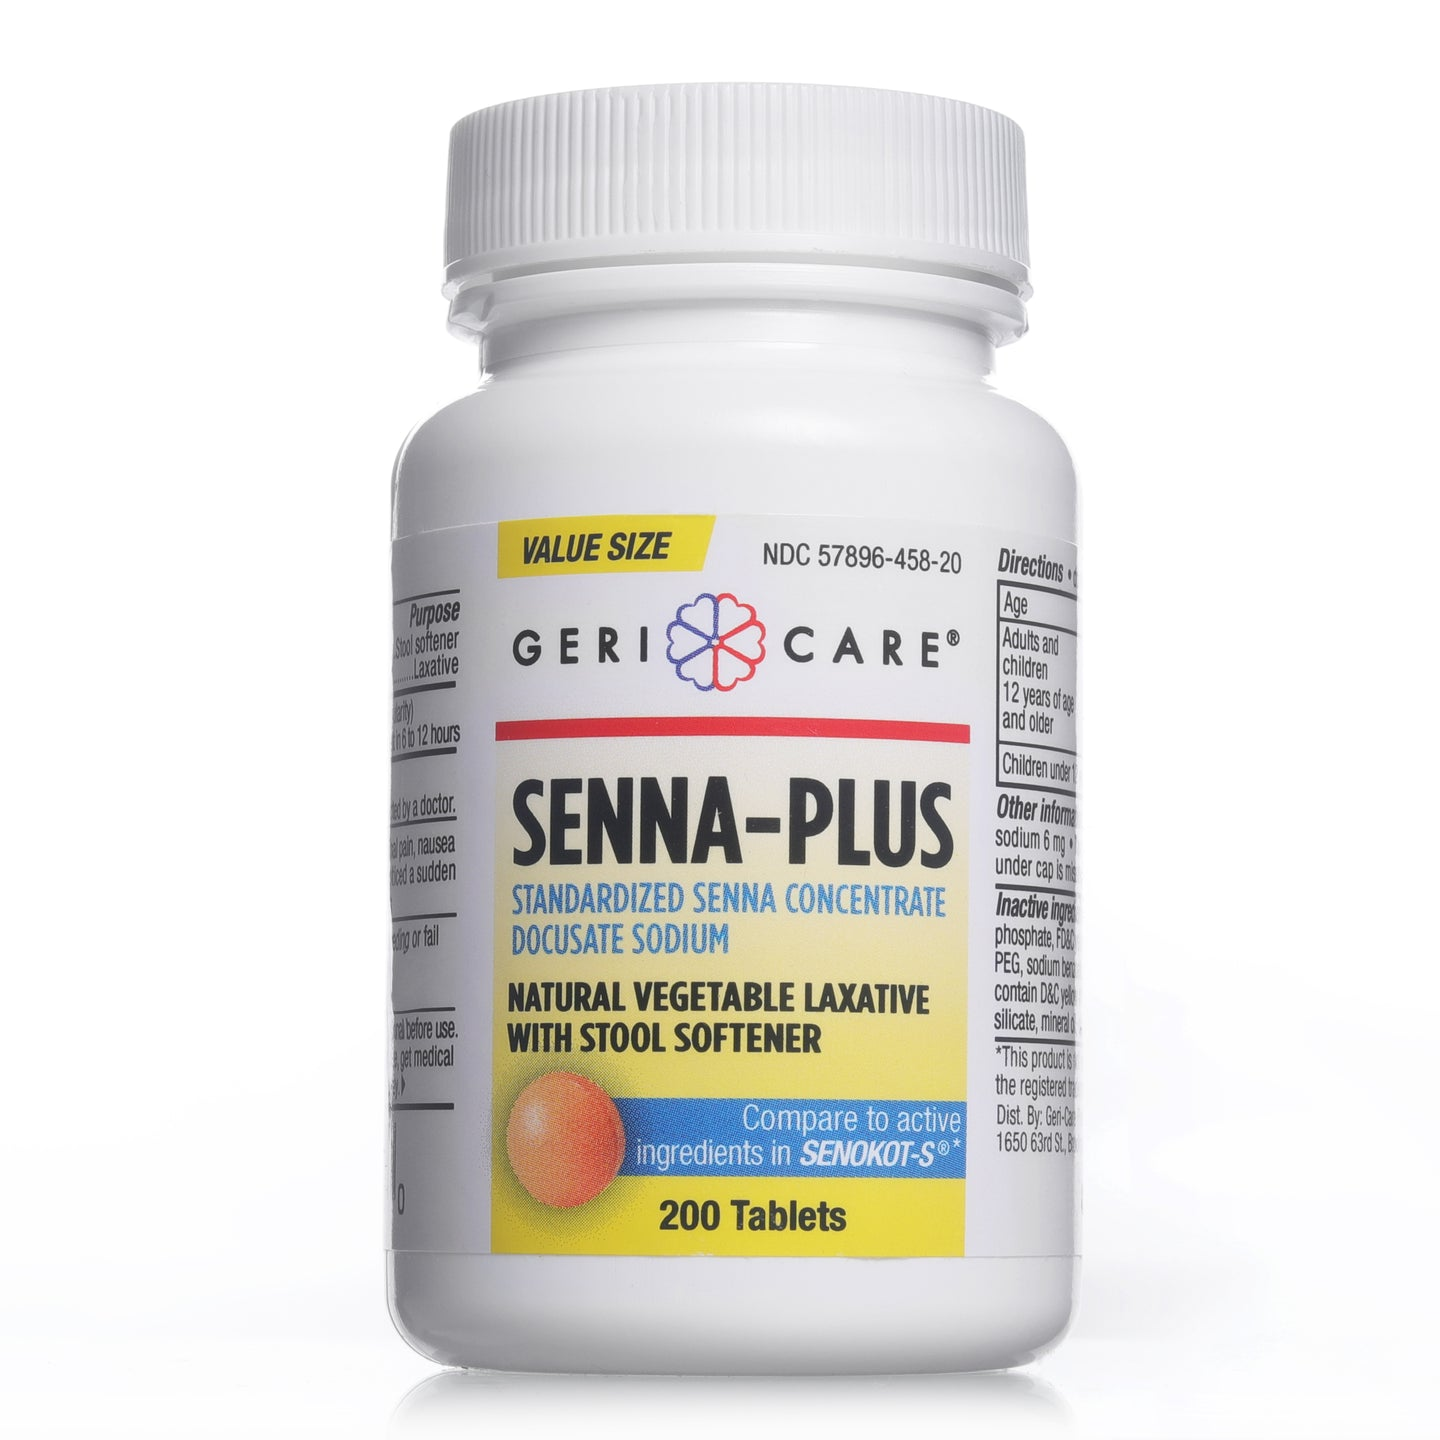 Senna Plus | Natural Vegetable Laxative with Stool Softener - 200 Count Tablets